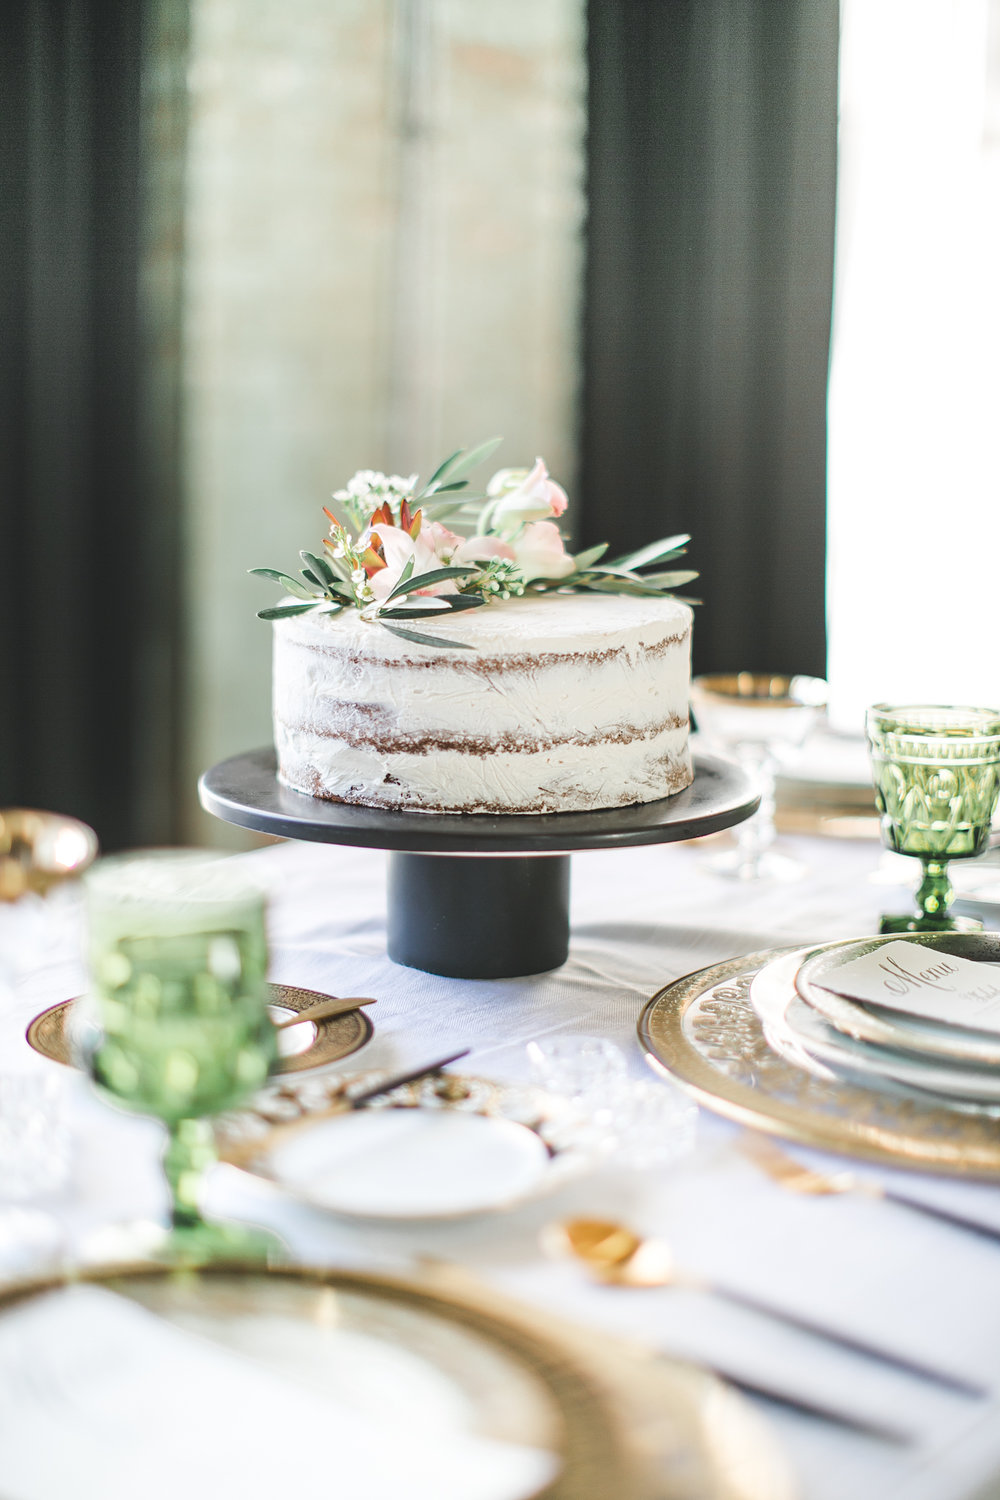 Not only did Kate put together the entire styled wedding photoshoot...but she baked a  friggin'  cake too.  Kind of annoying how talented that girl is.  But I  really   dig  it.